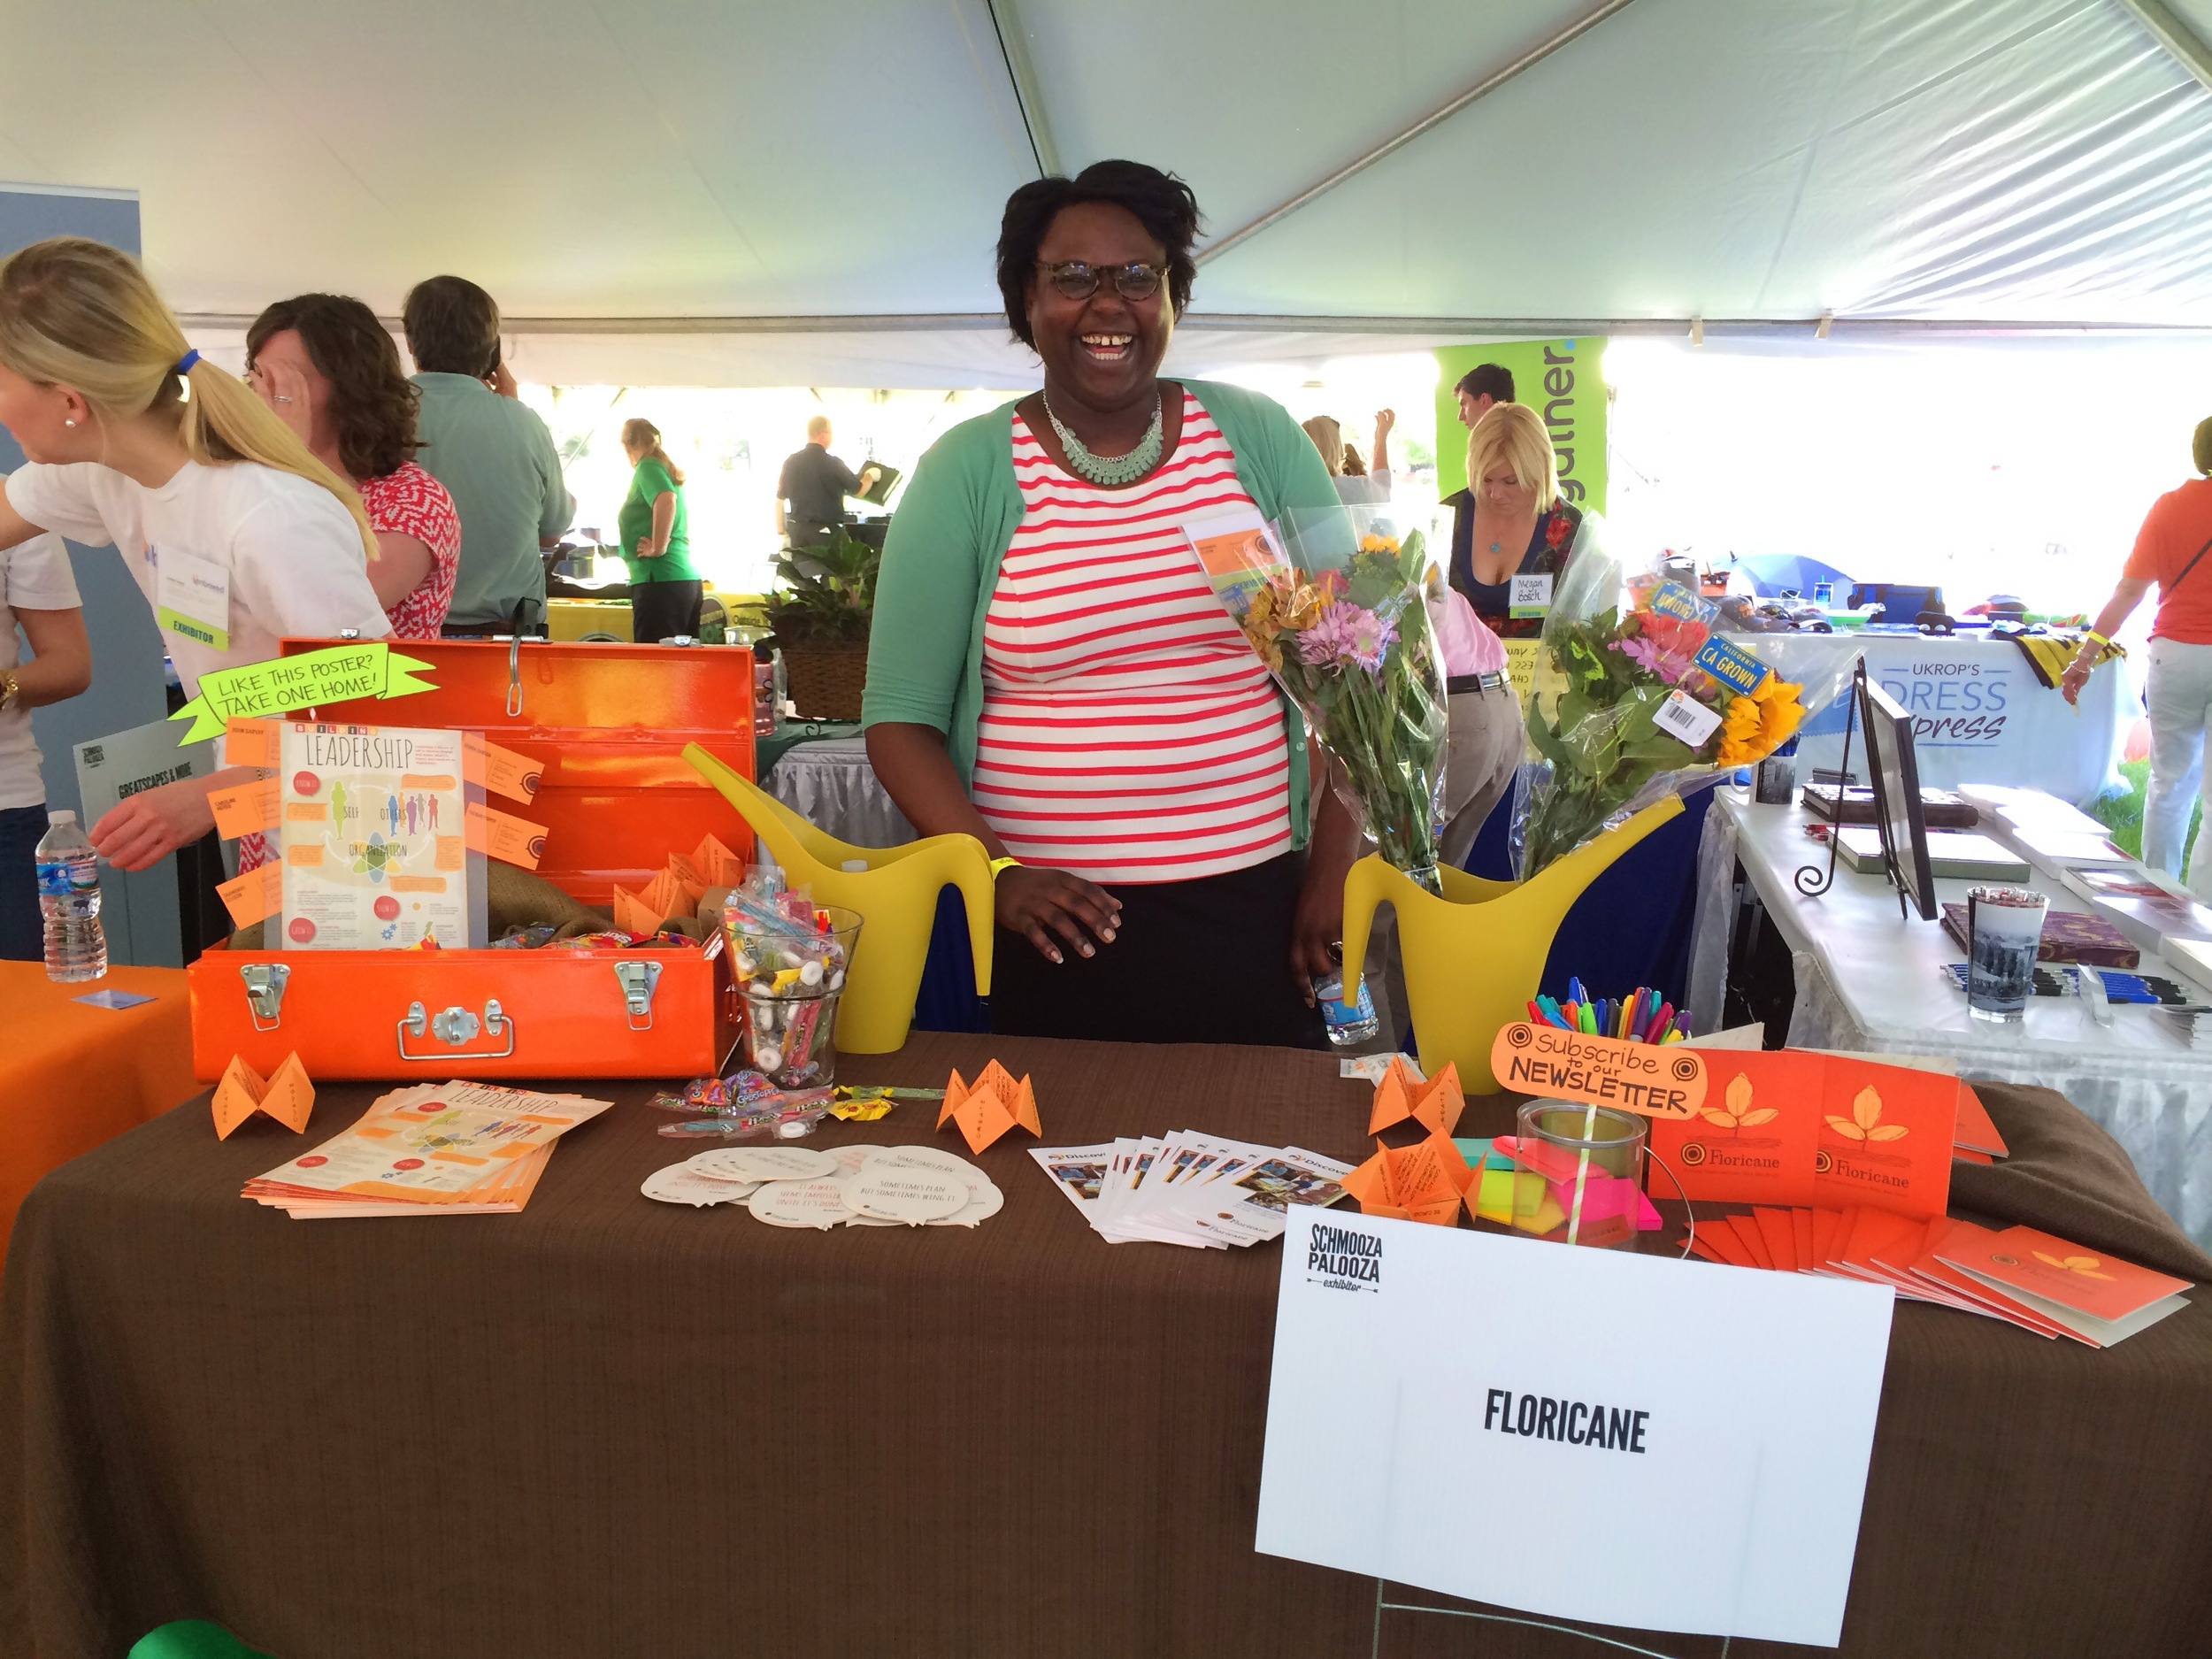 This is me, manning the Floricane table at The Greater Richmond Chamber's Schmooza Palooza event.